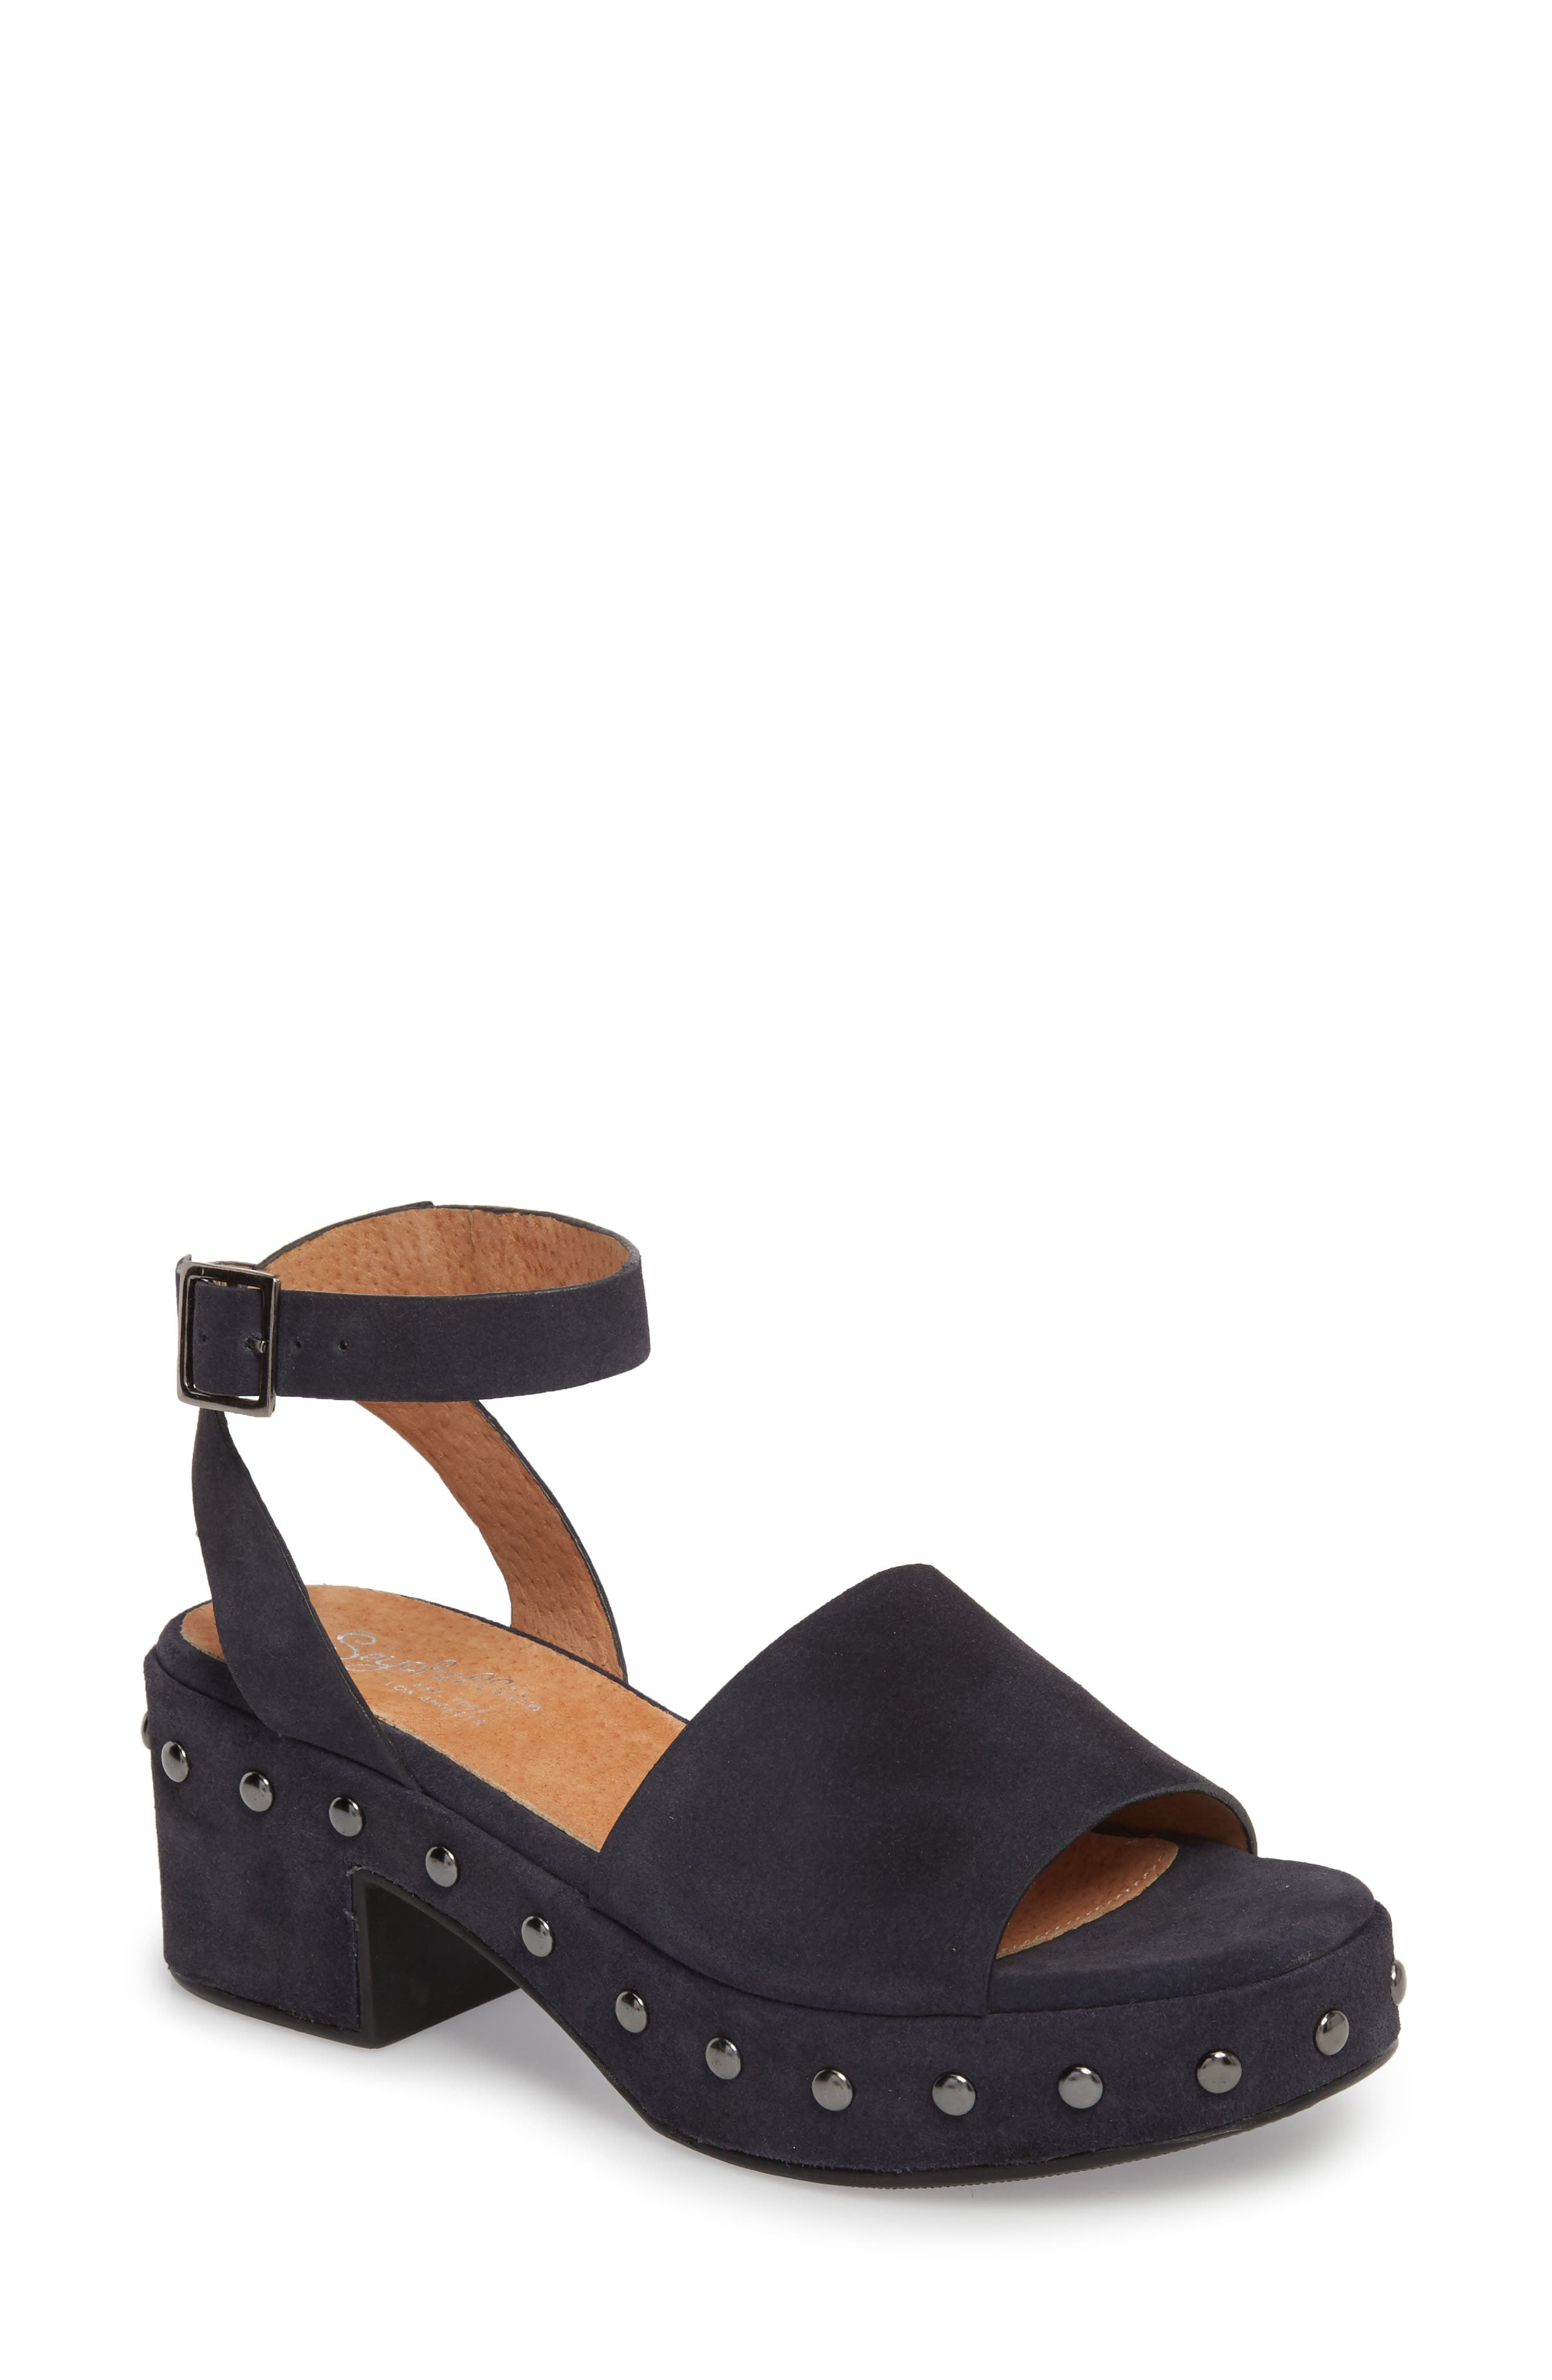 Spare Moments Sandal,                             Main thumbnail 1, color,                             NAVY SUEDE